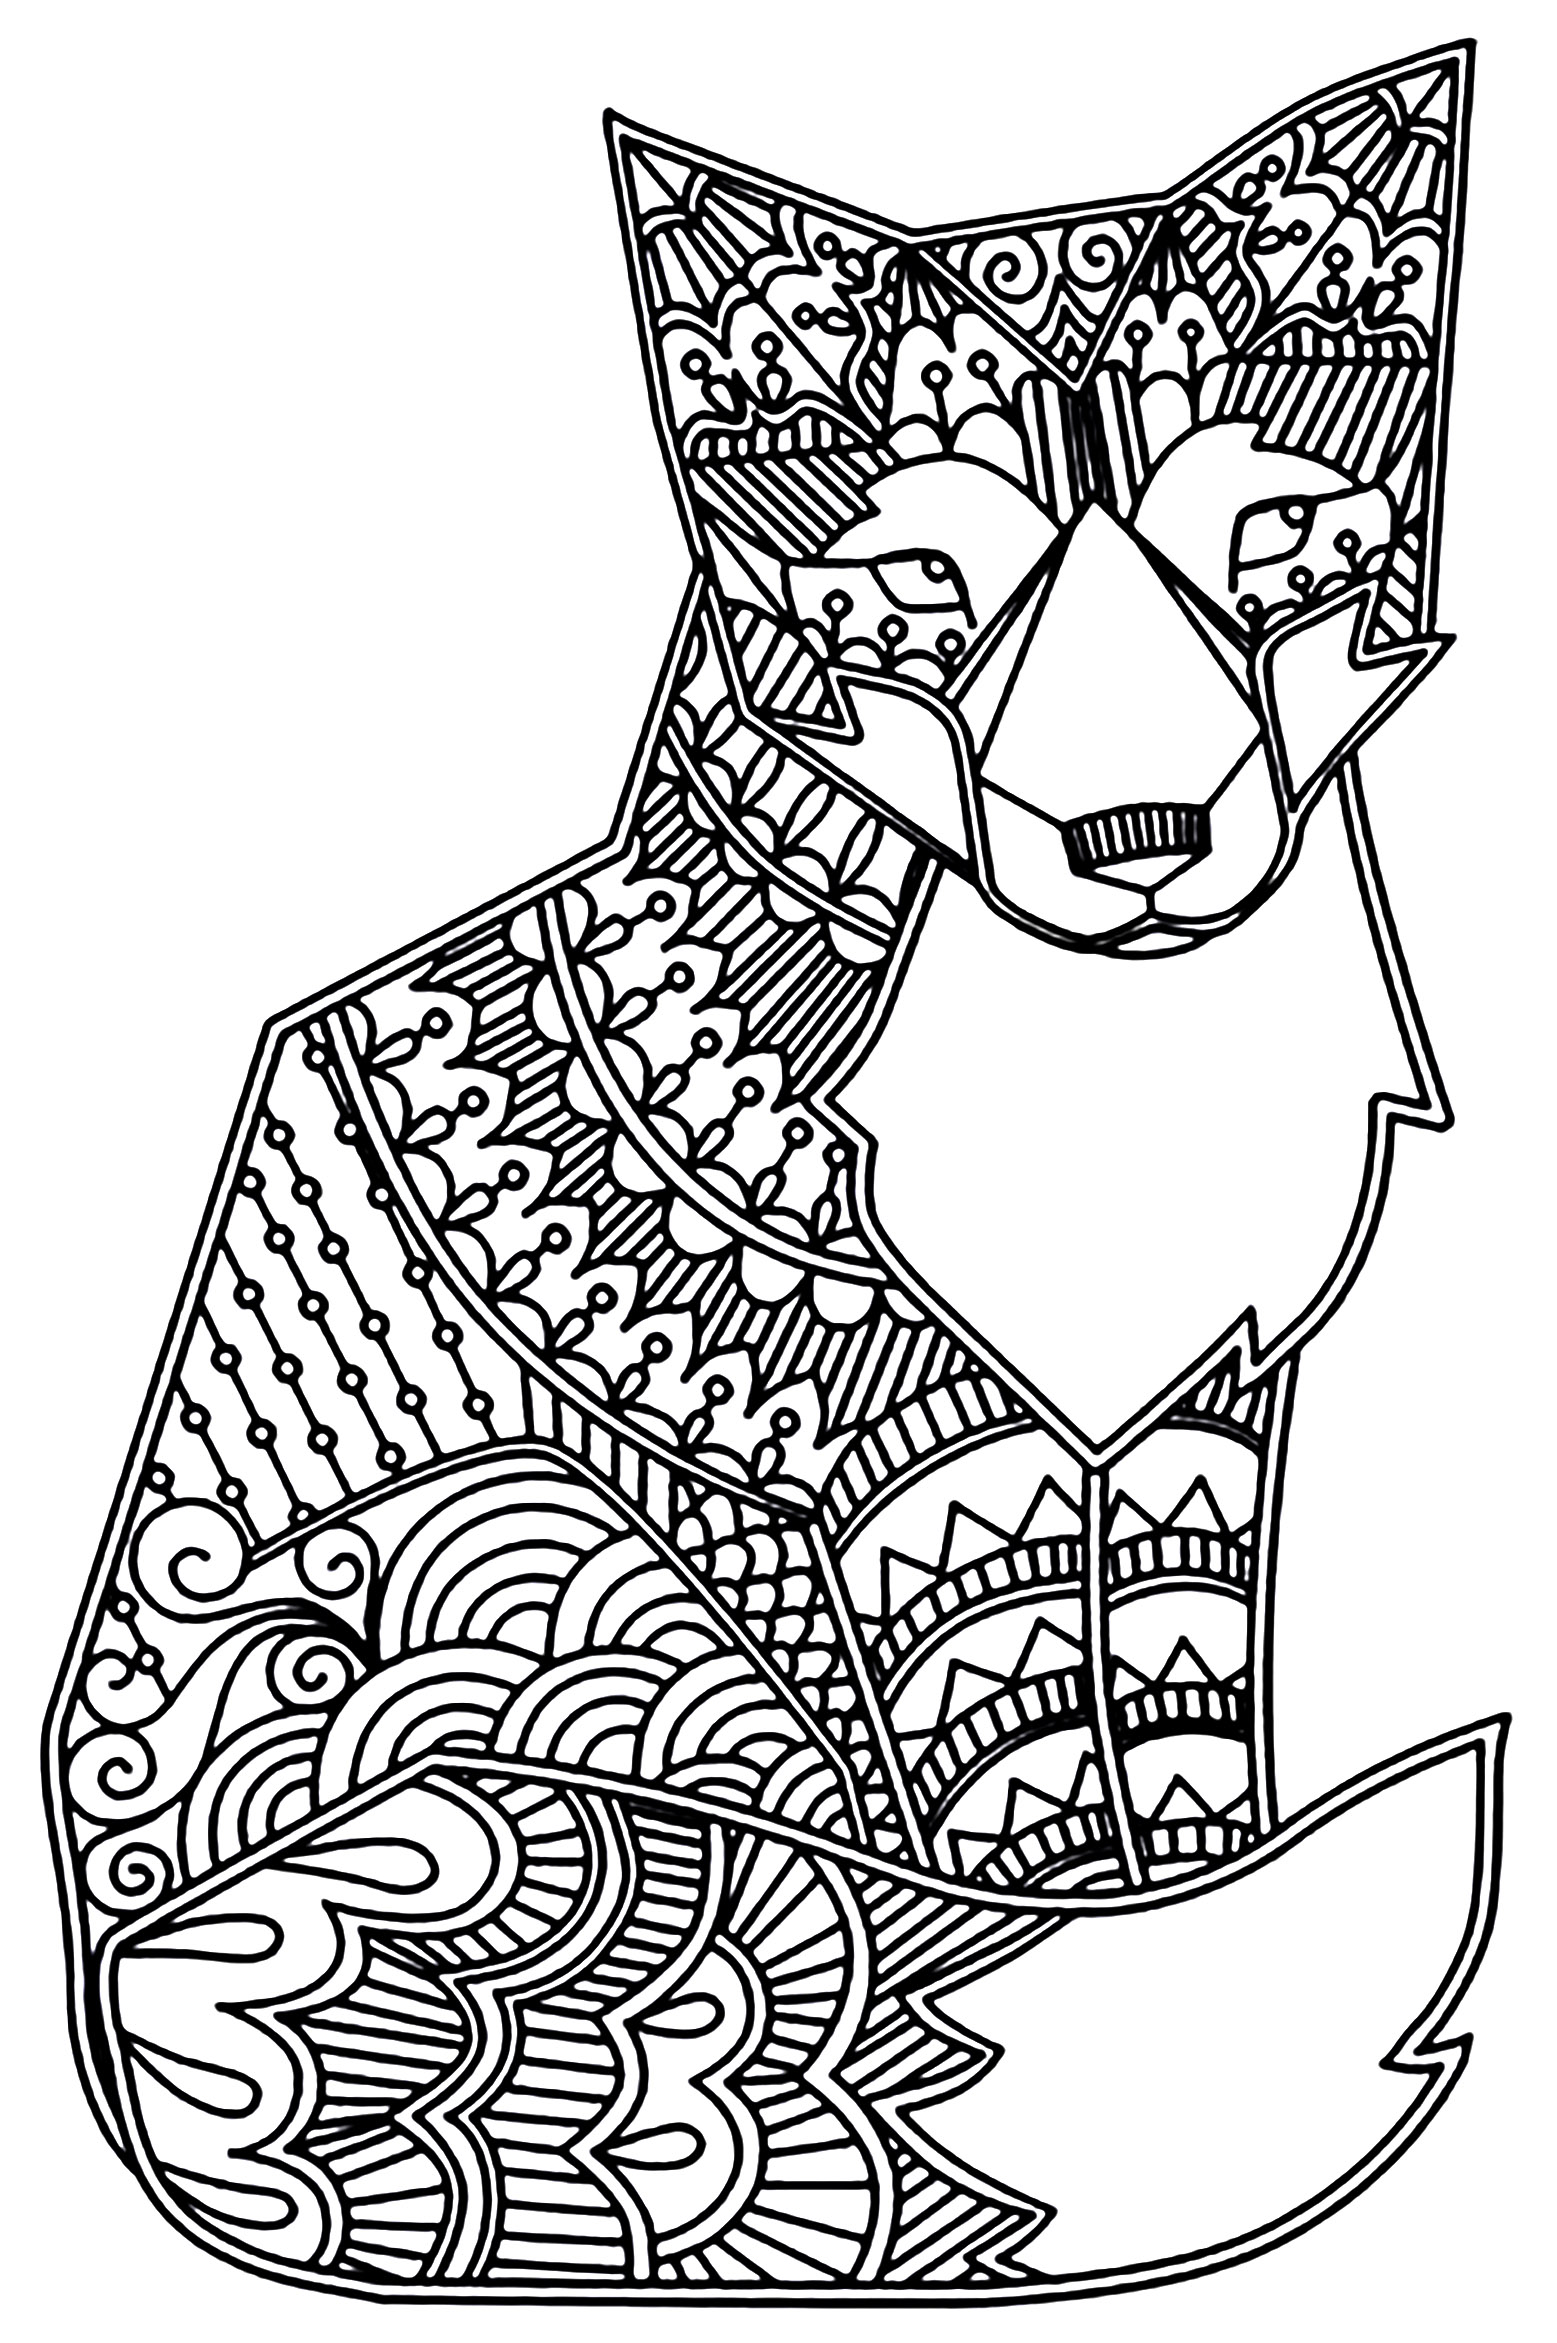 coloring pages for adults games - fox foxes adult coloring pages